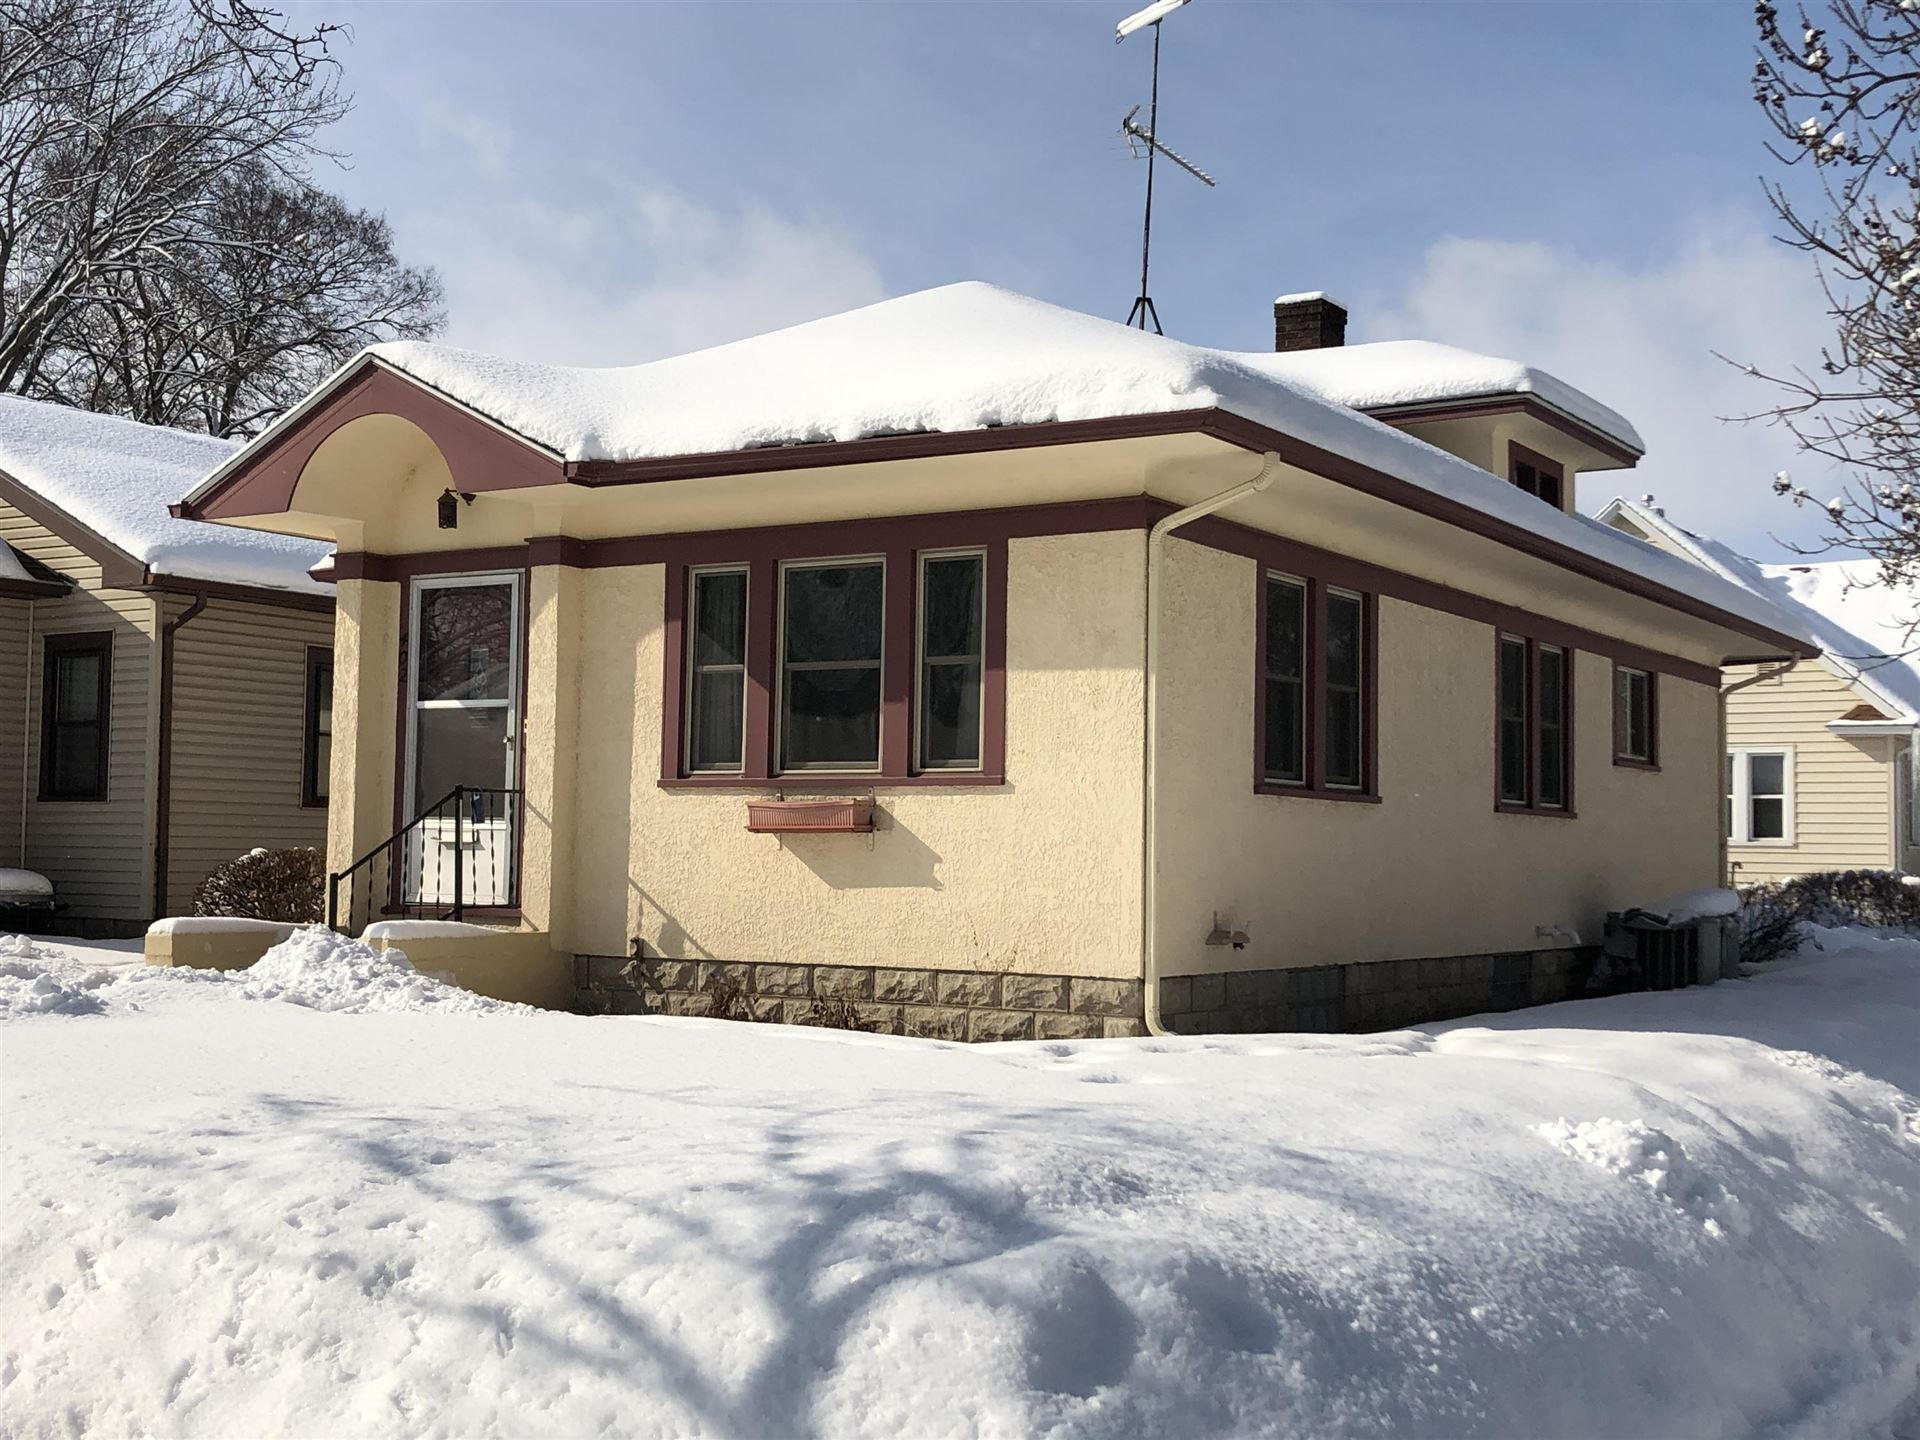 402 22nd St S, La Crosse, WI 54601 - MLS#: 1727958